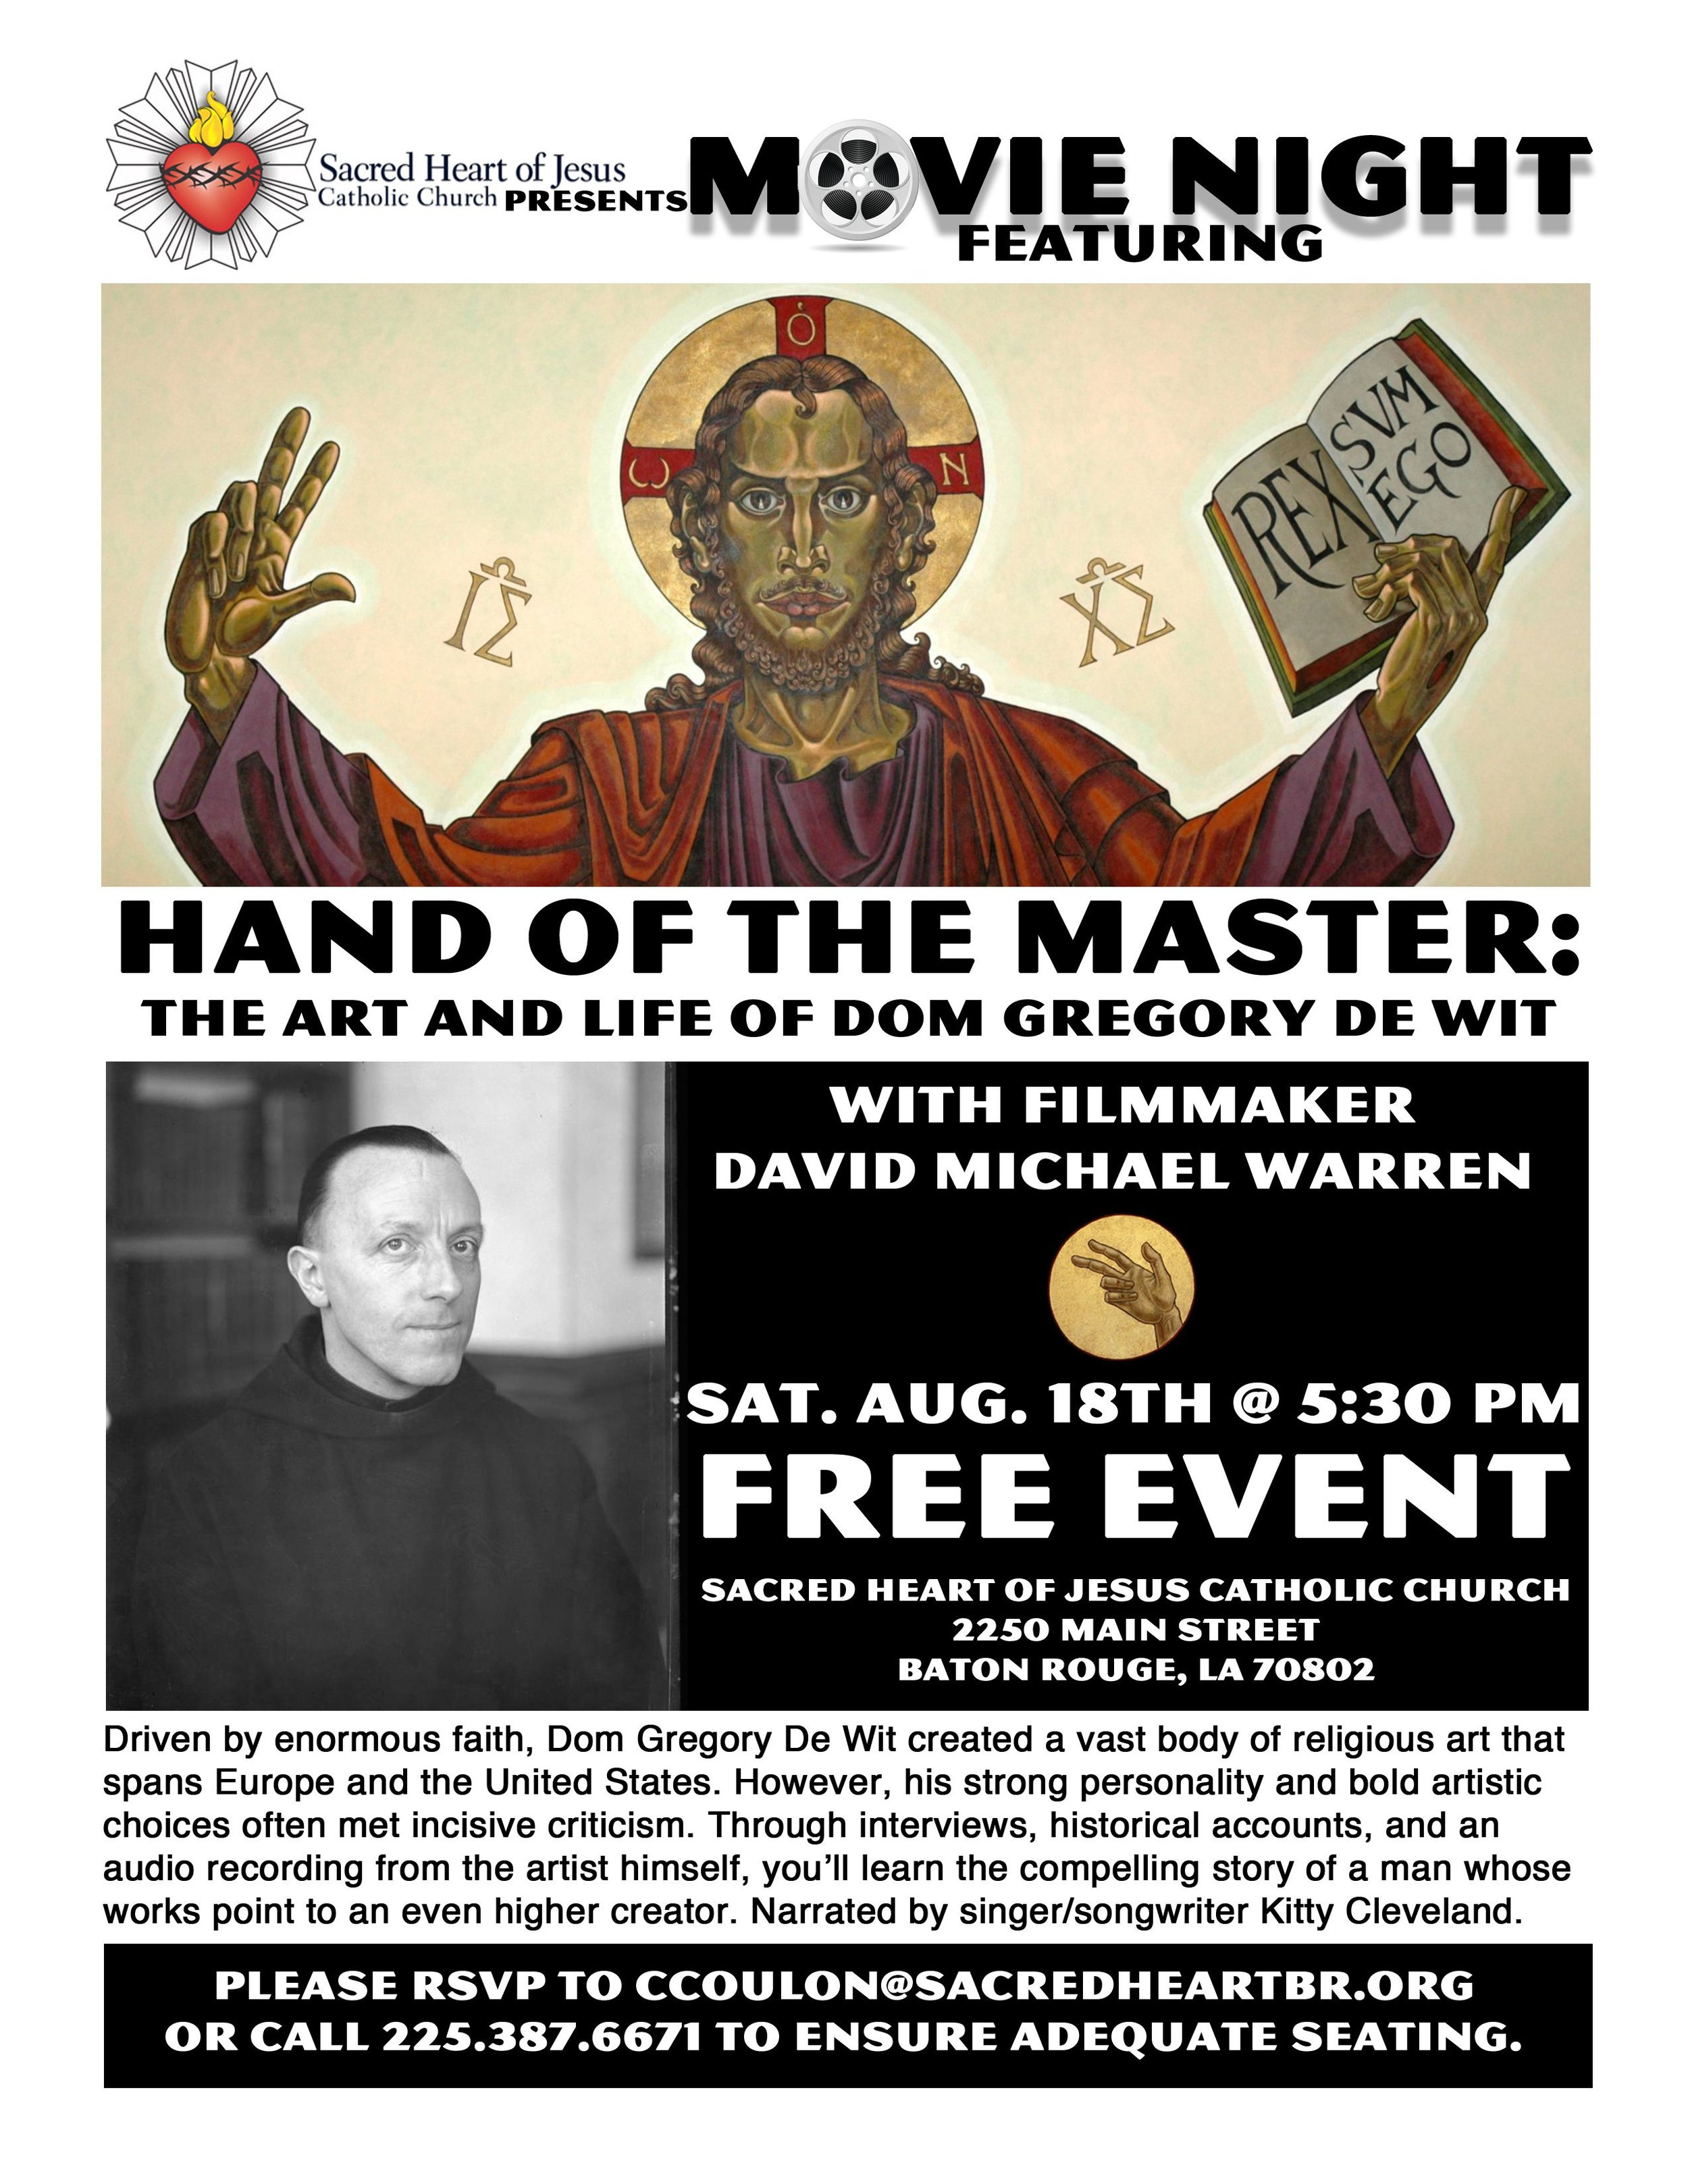 Hand of the Master Flyer 2.jpg